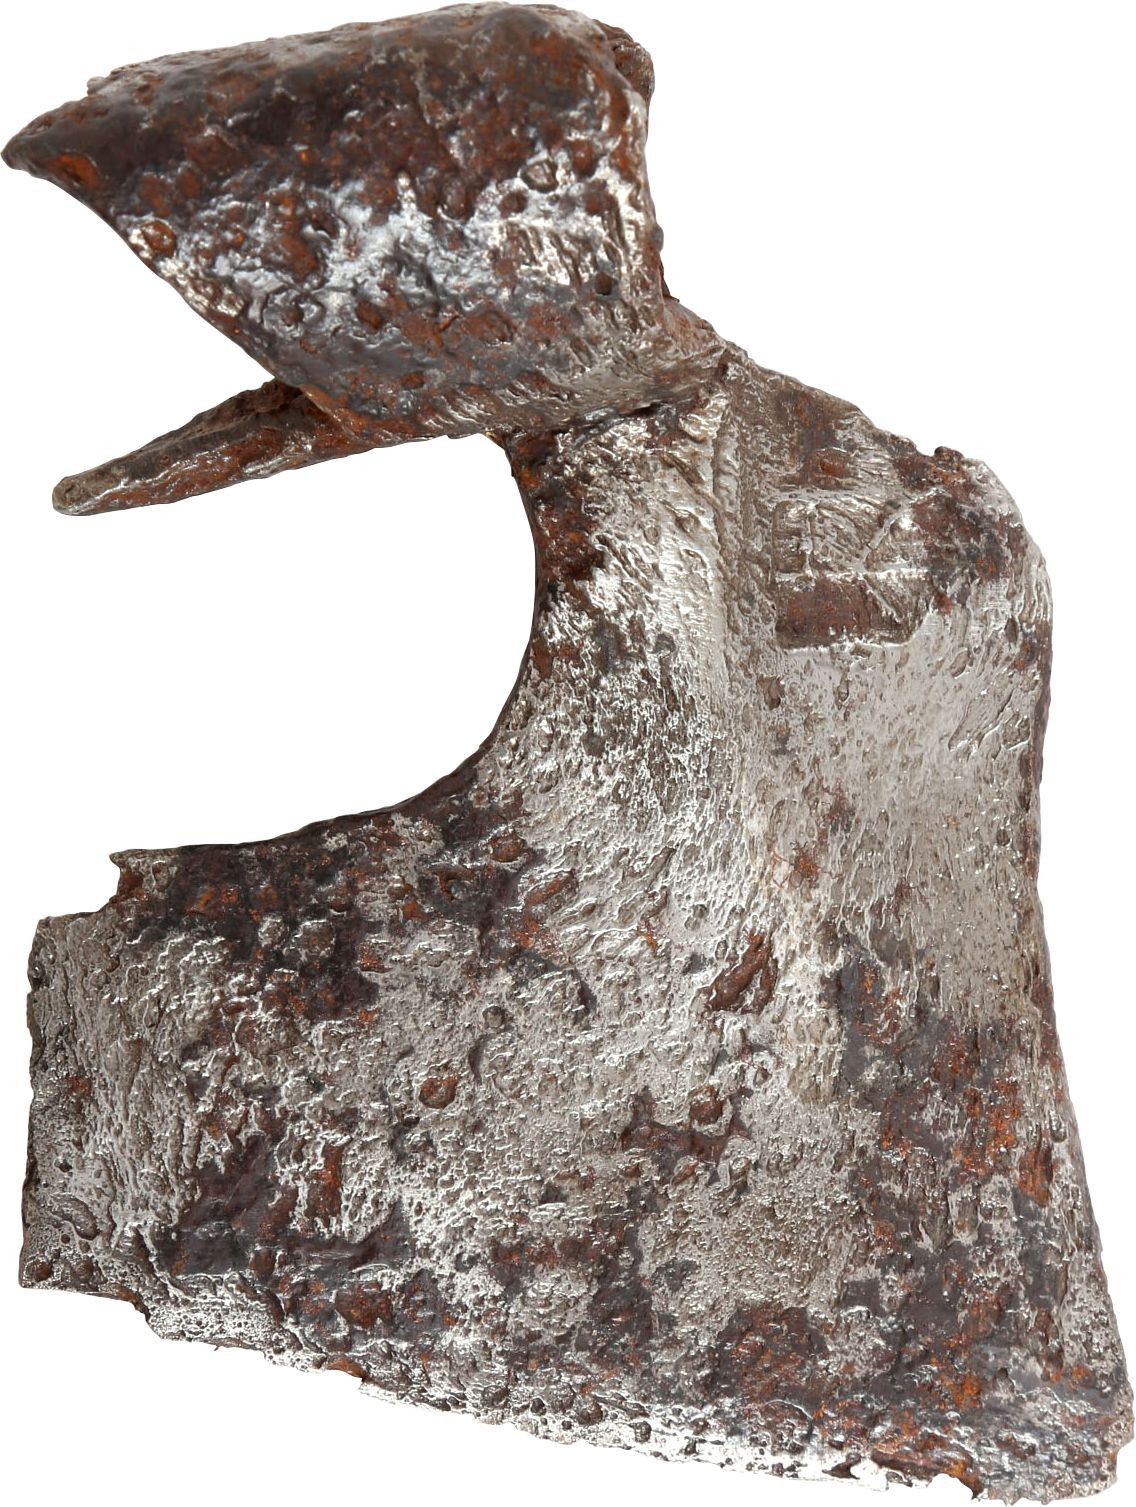 European Gothic Battle Axe 14Th-15Th Century - Product